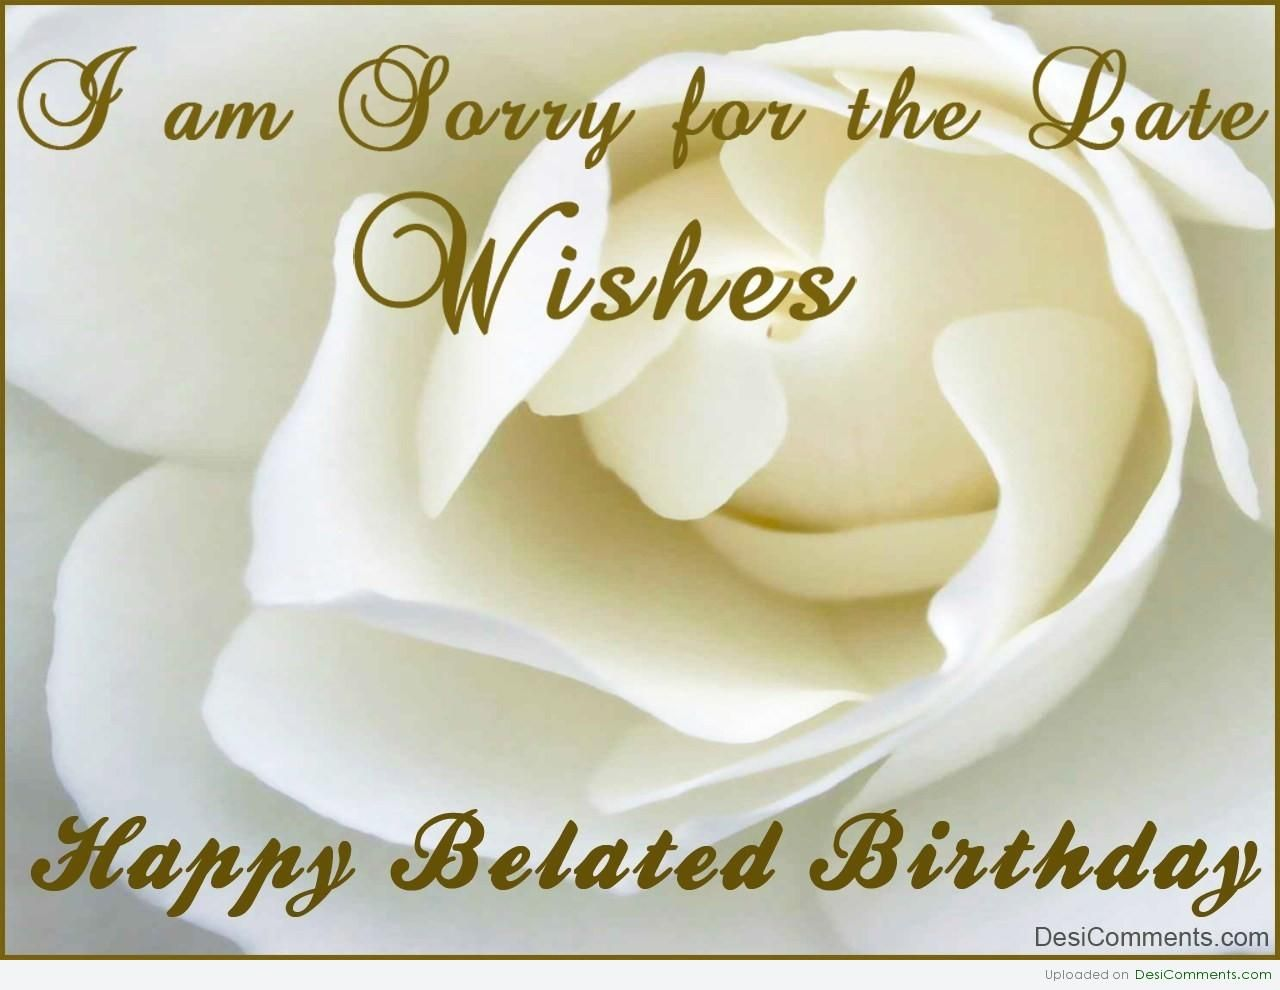 Belated birthday wishes free large images birthday quotes belated birthday wishes free large images m4hsunfo